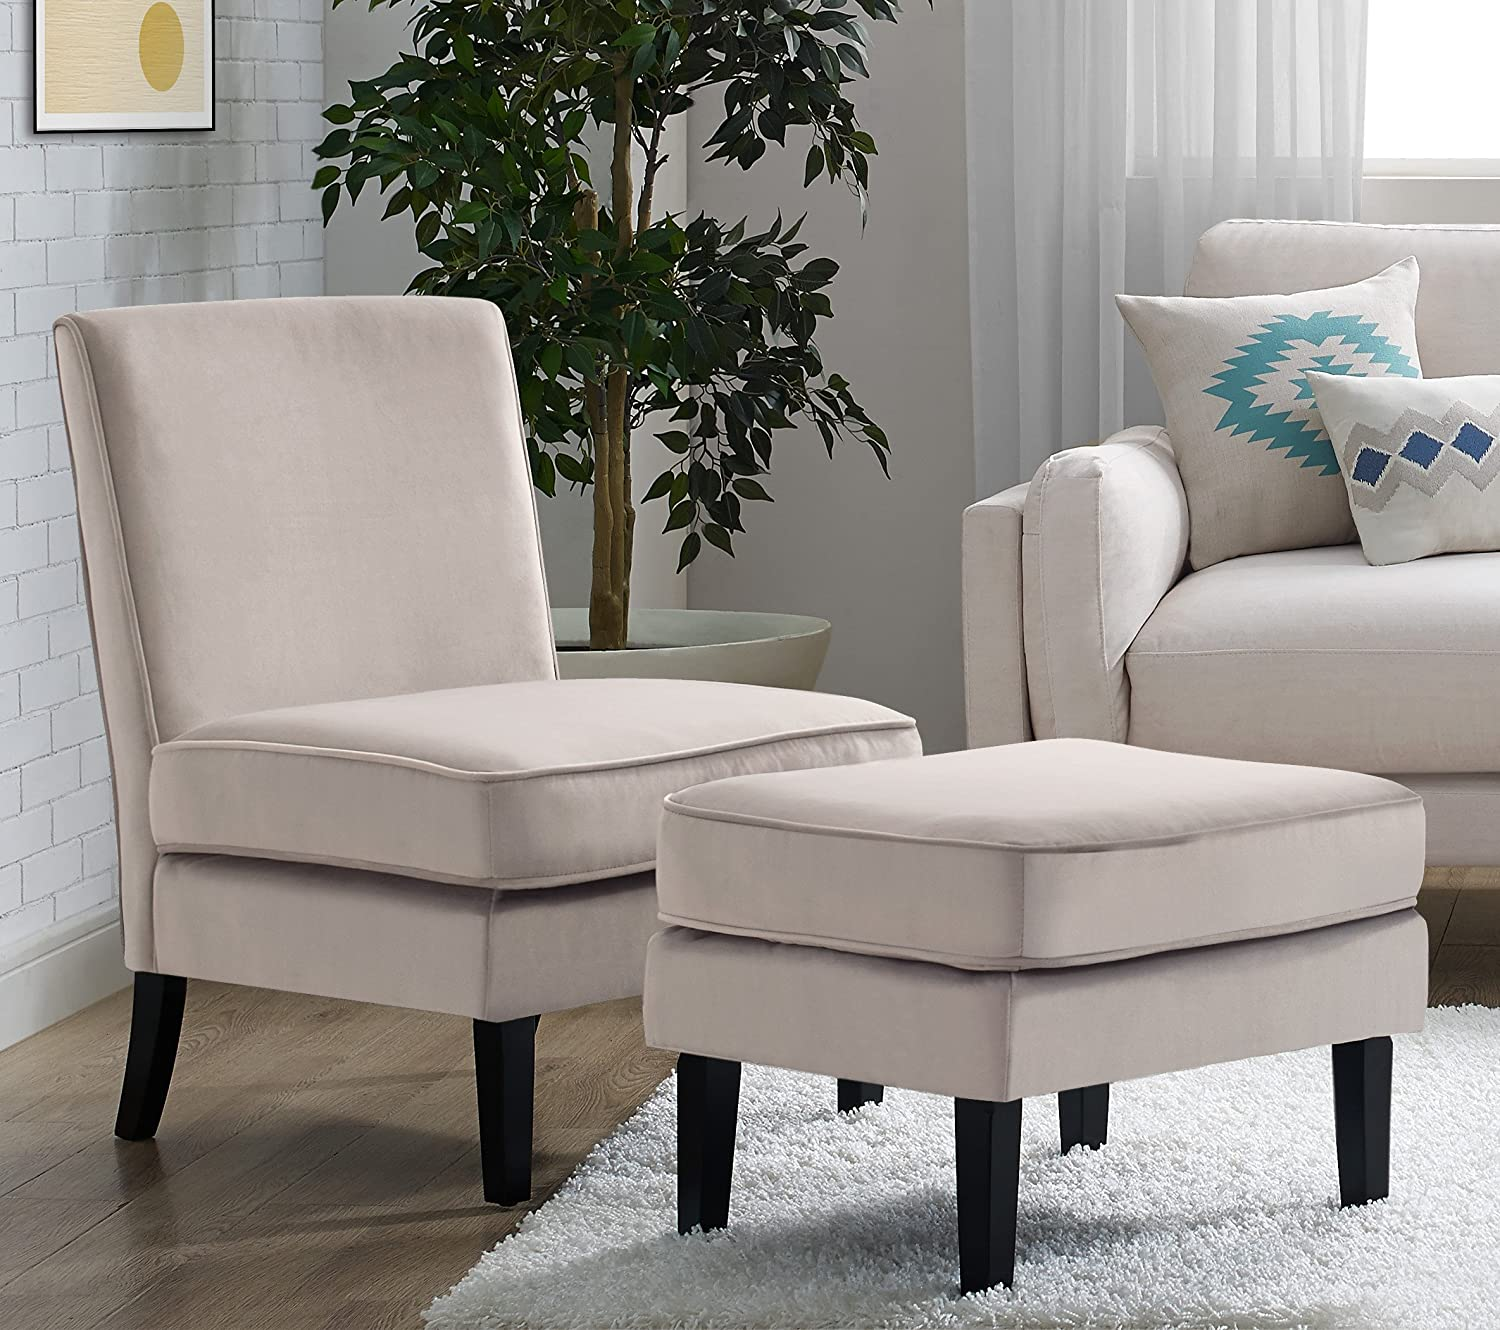 Elle Decor UPH10020B Elle Décor Olivia Chair and Ottoman, Accent, Taupe